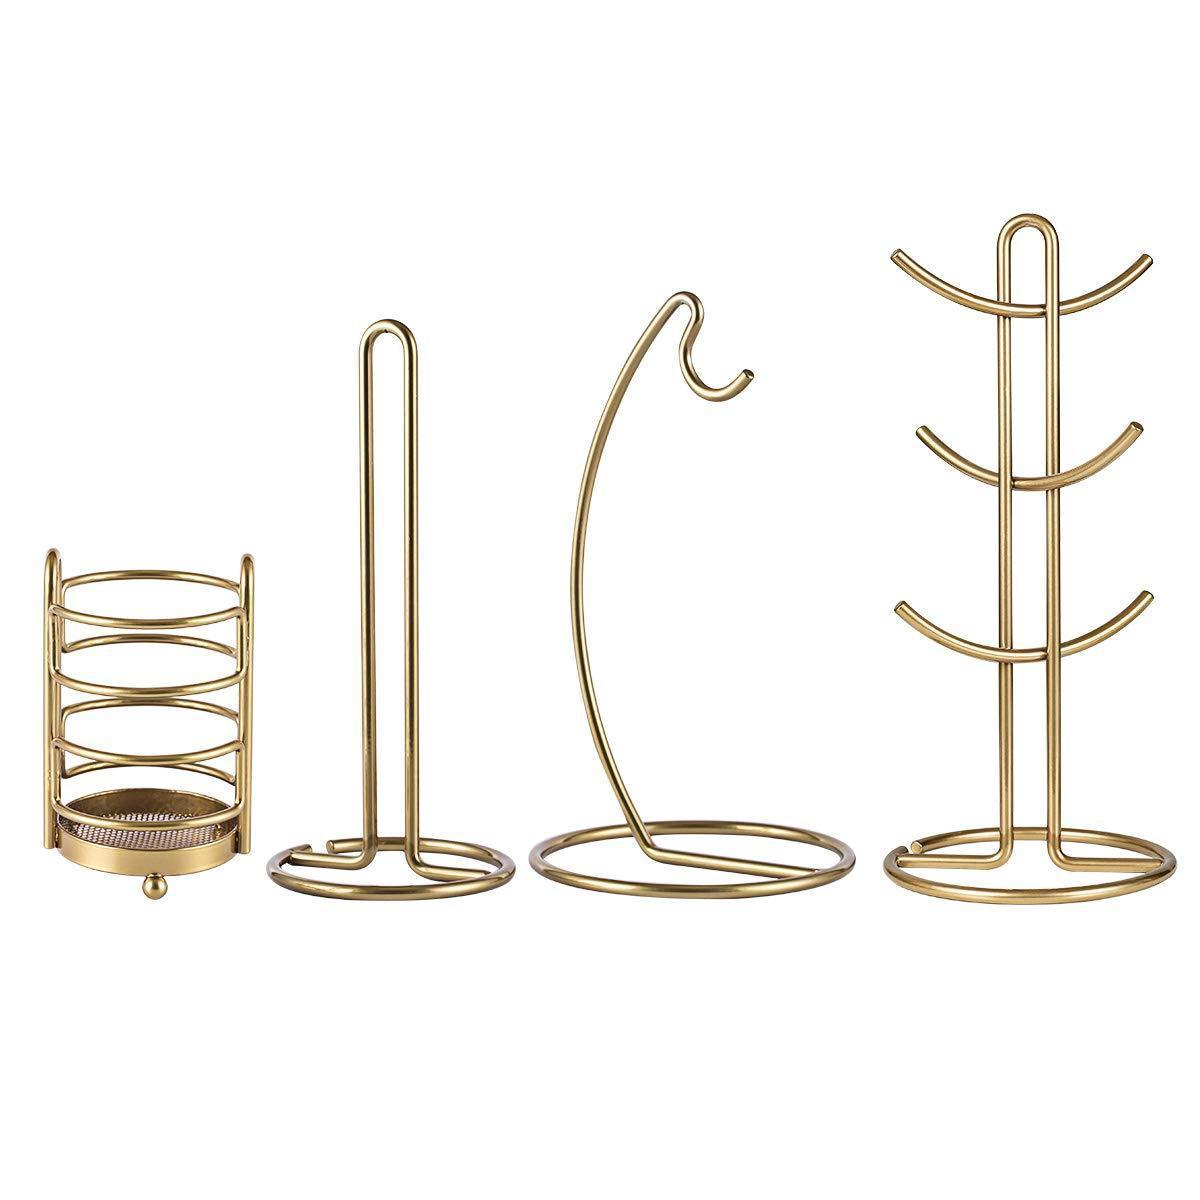 Kitchen Organizer Set-4 Piece, Banana Hanger, Mug Tree Holder Rack, Paper Towel Holder,Flatware Caddy,Kitchen Gifts Modern Collection for Countertop Table Décor